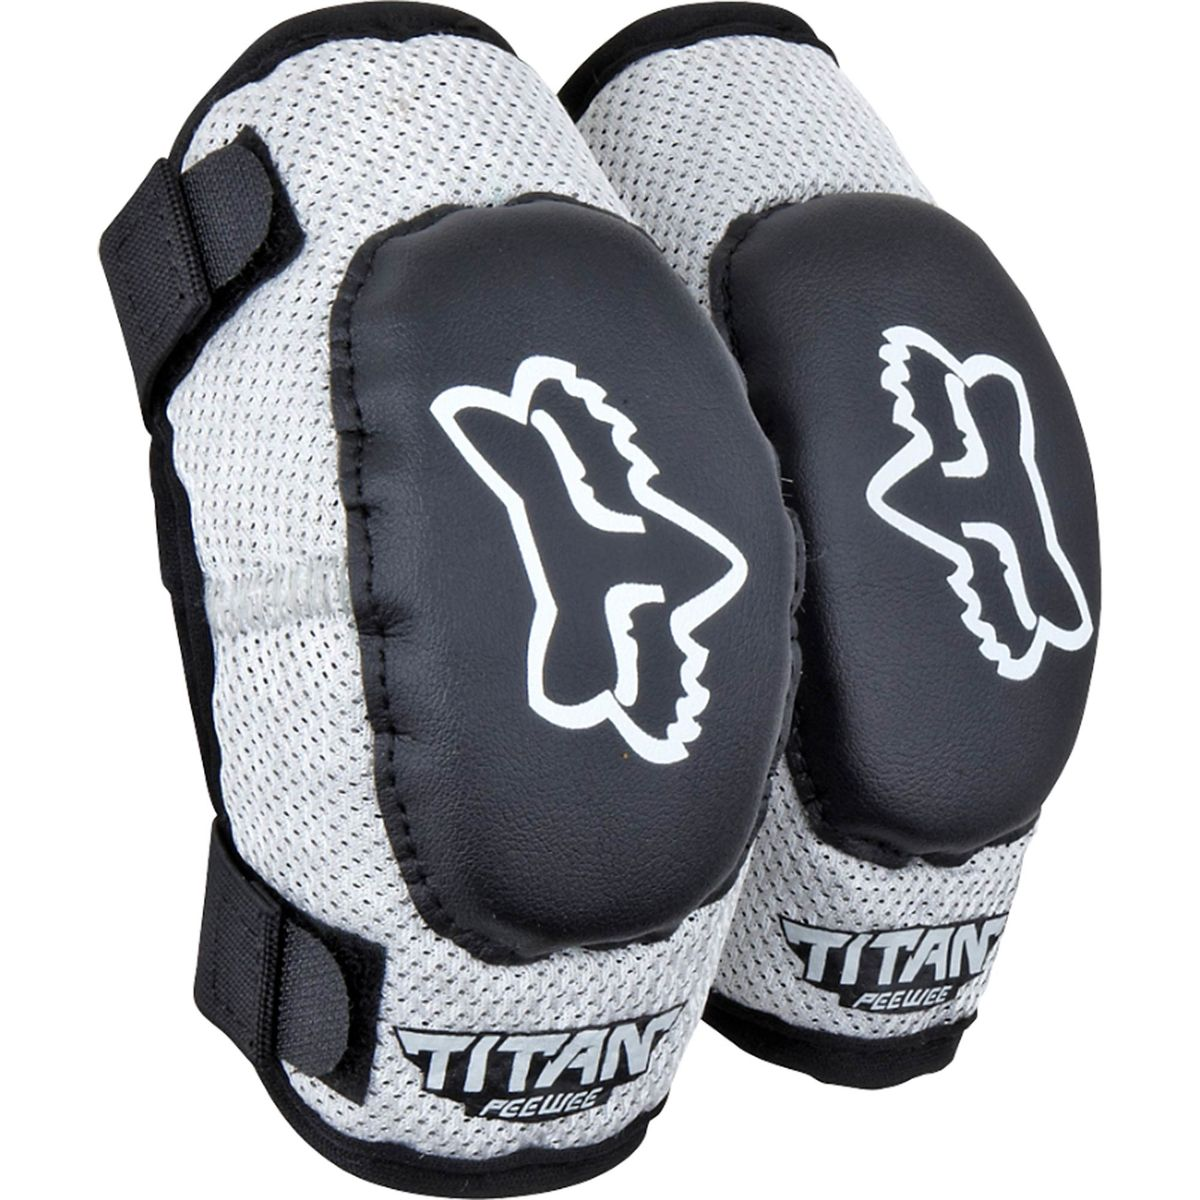 PEEWEE TITAN ELBOW GUARD Kids